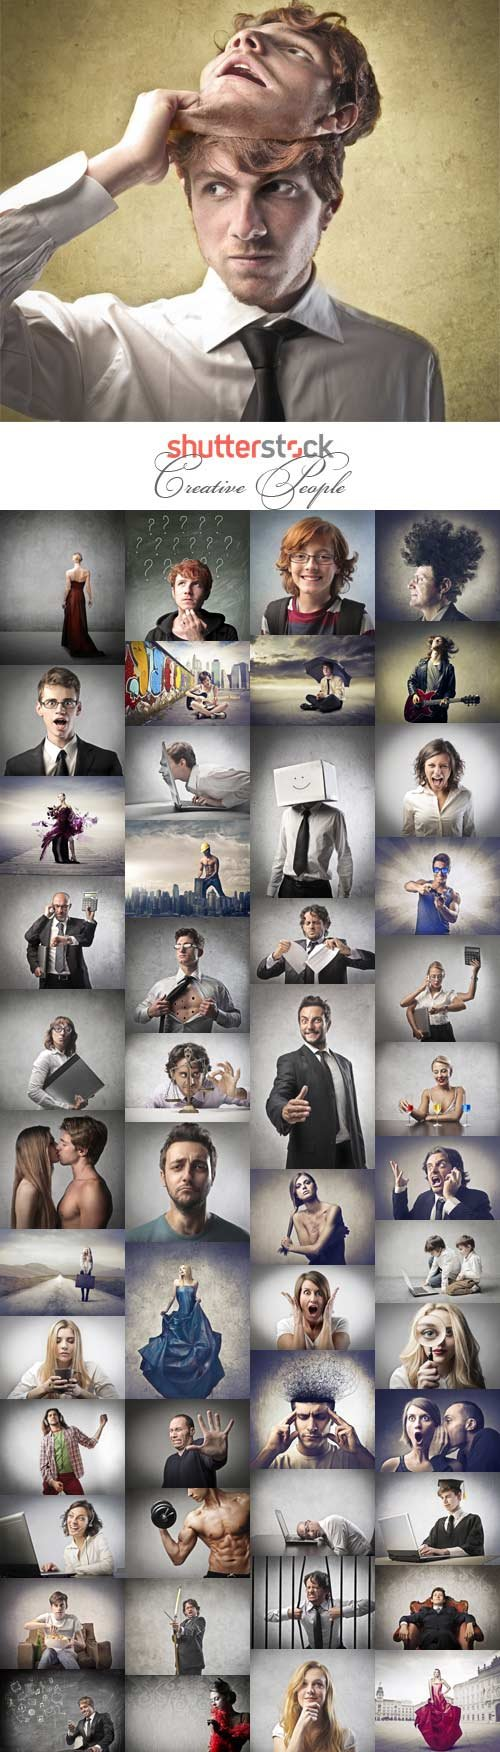 Creative People stock photo